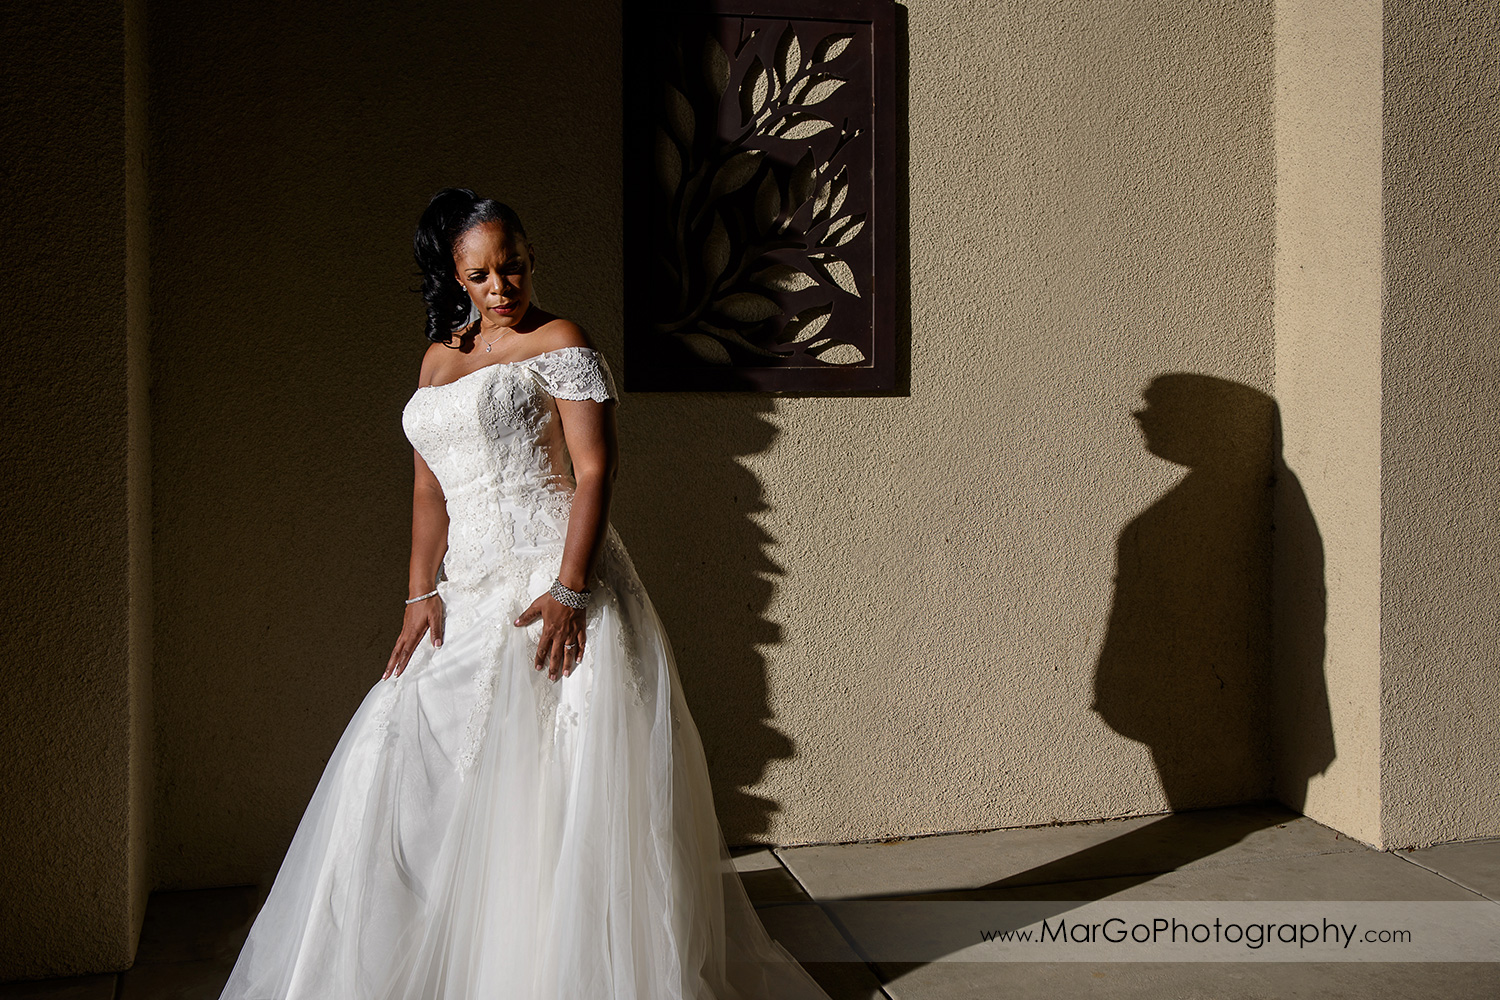 bridge with groom's shadow at Wedgewood Wedding & Banquet Center in Brentwood